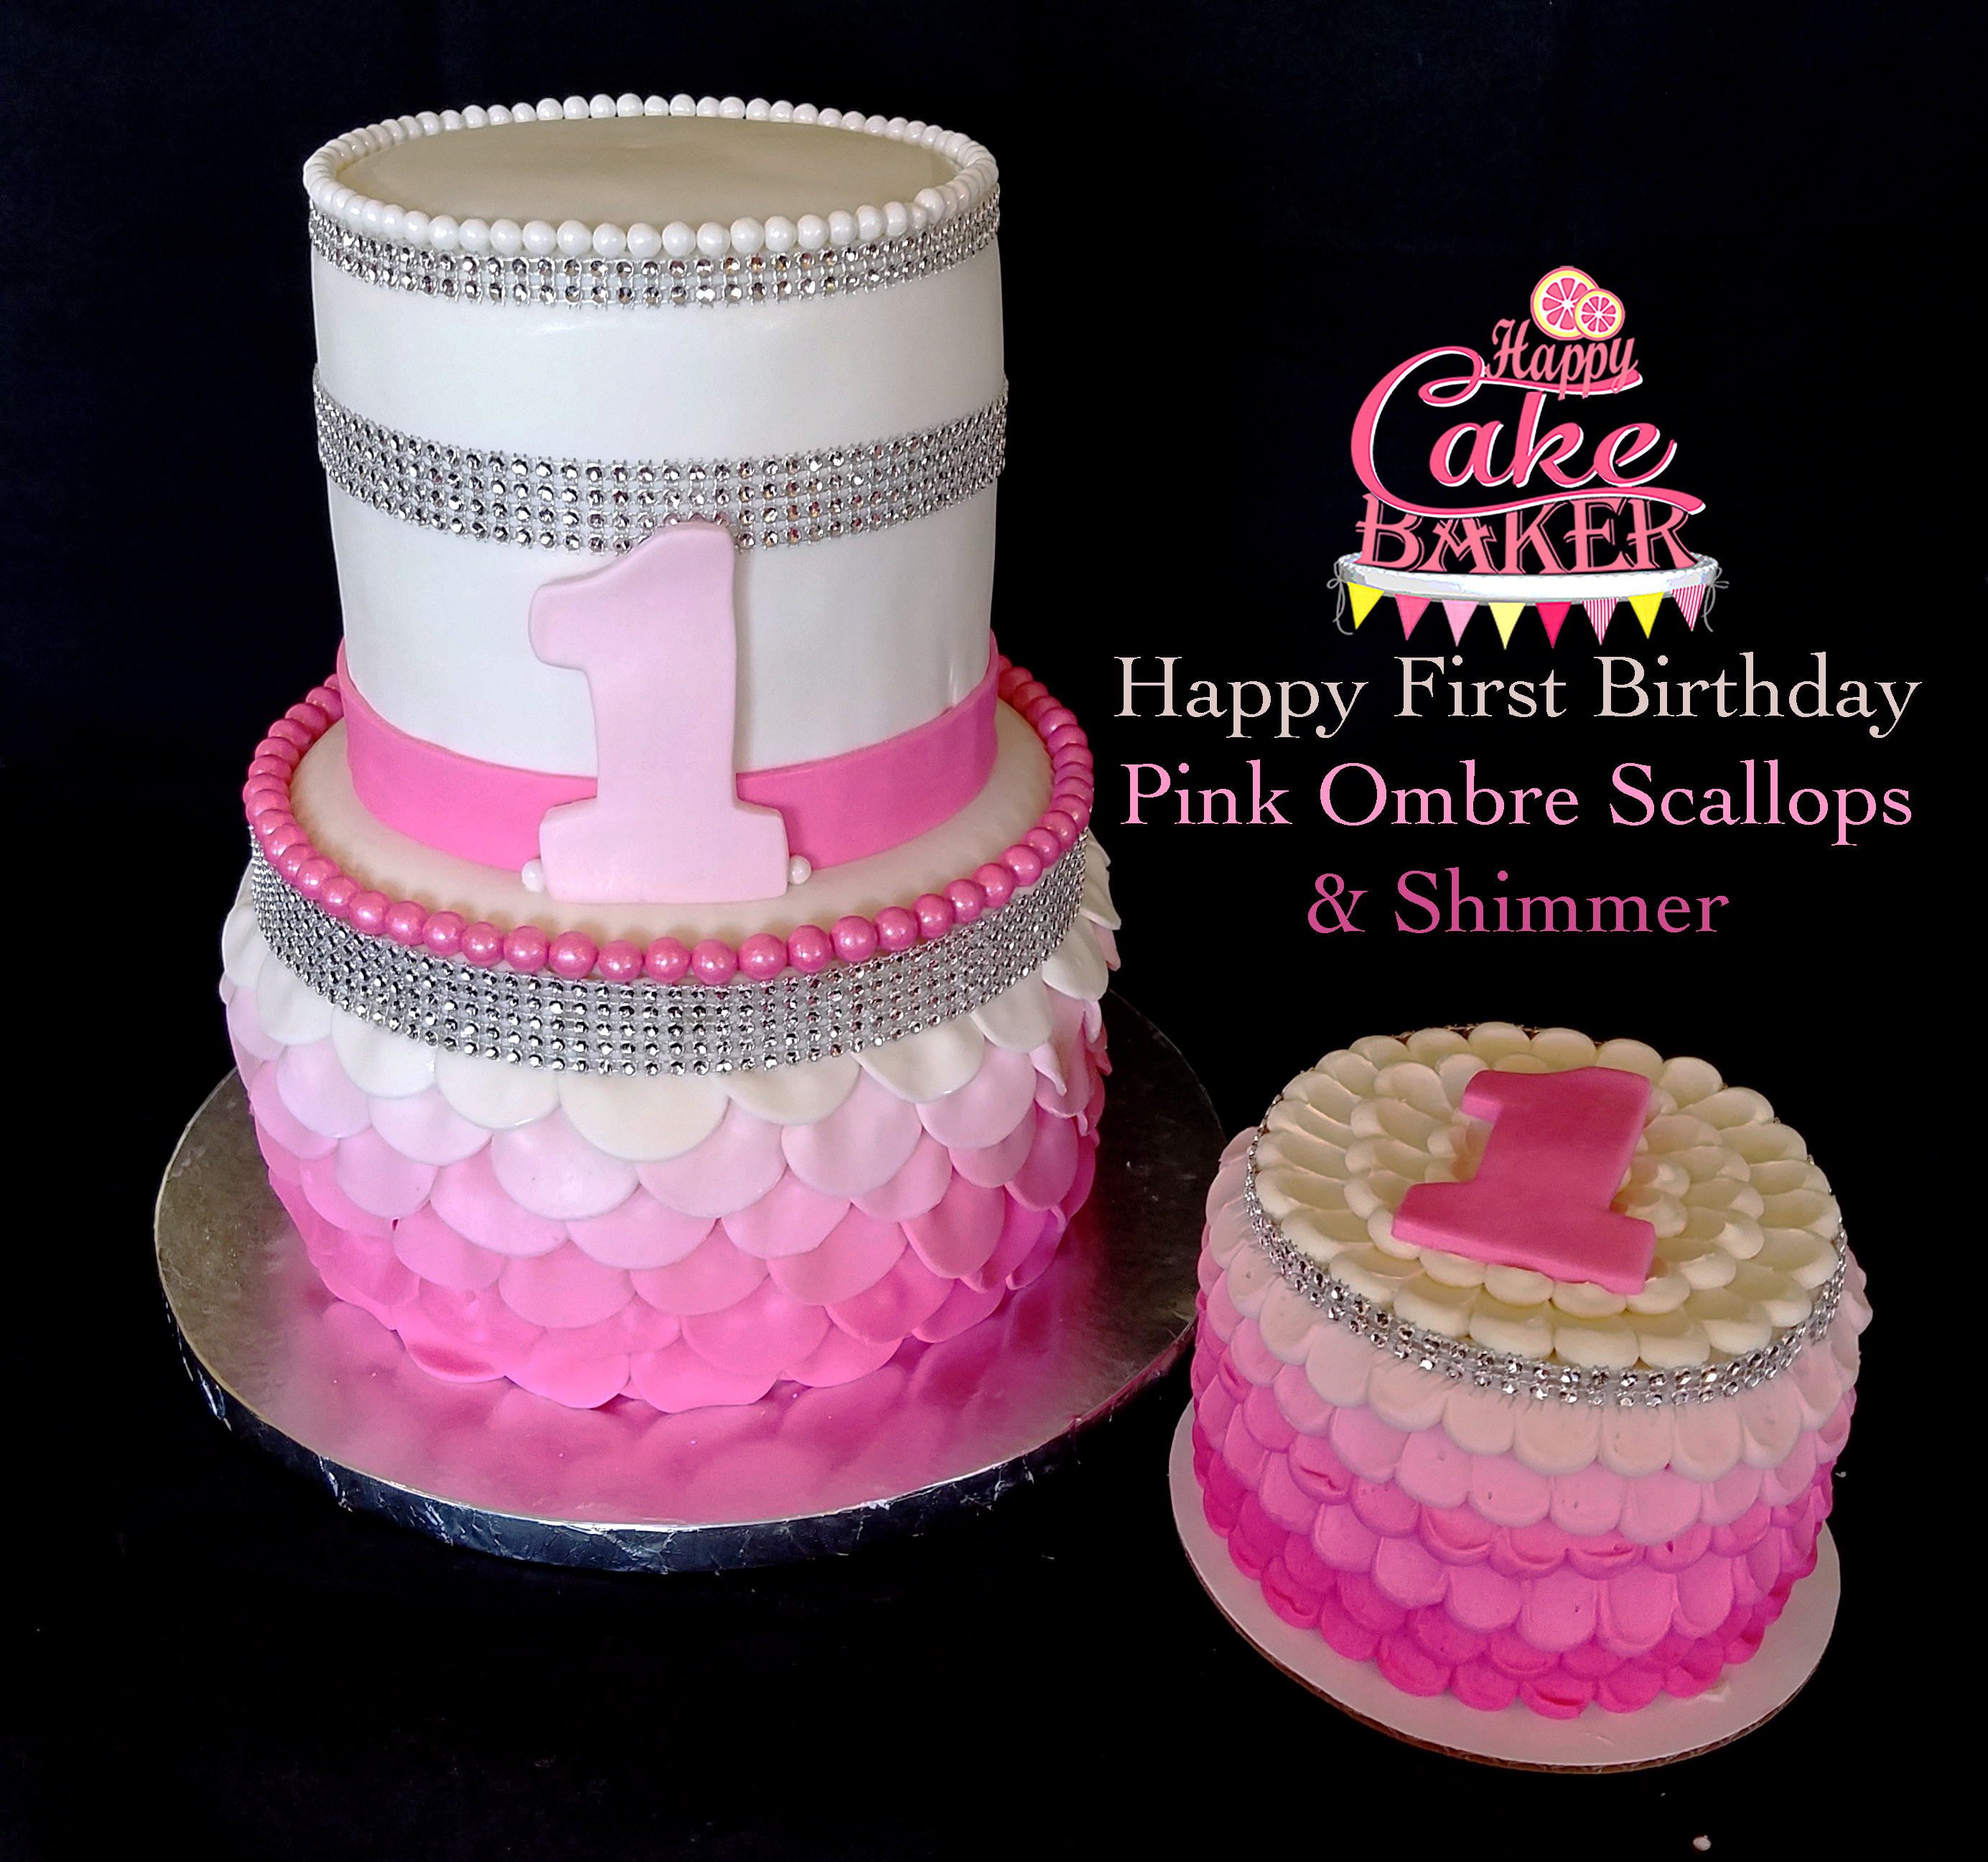 FirstBirthdaySetScallopsAndShimmer